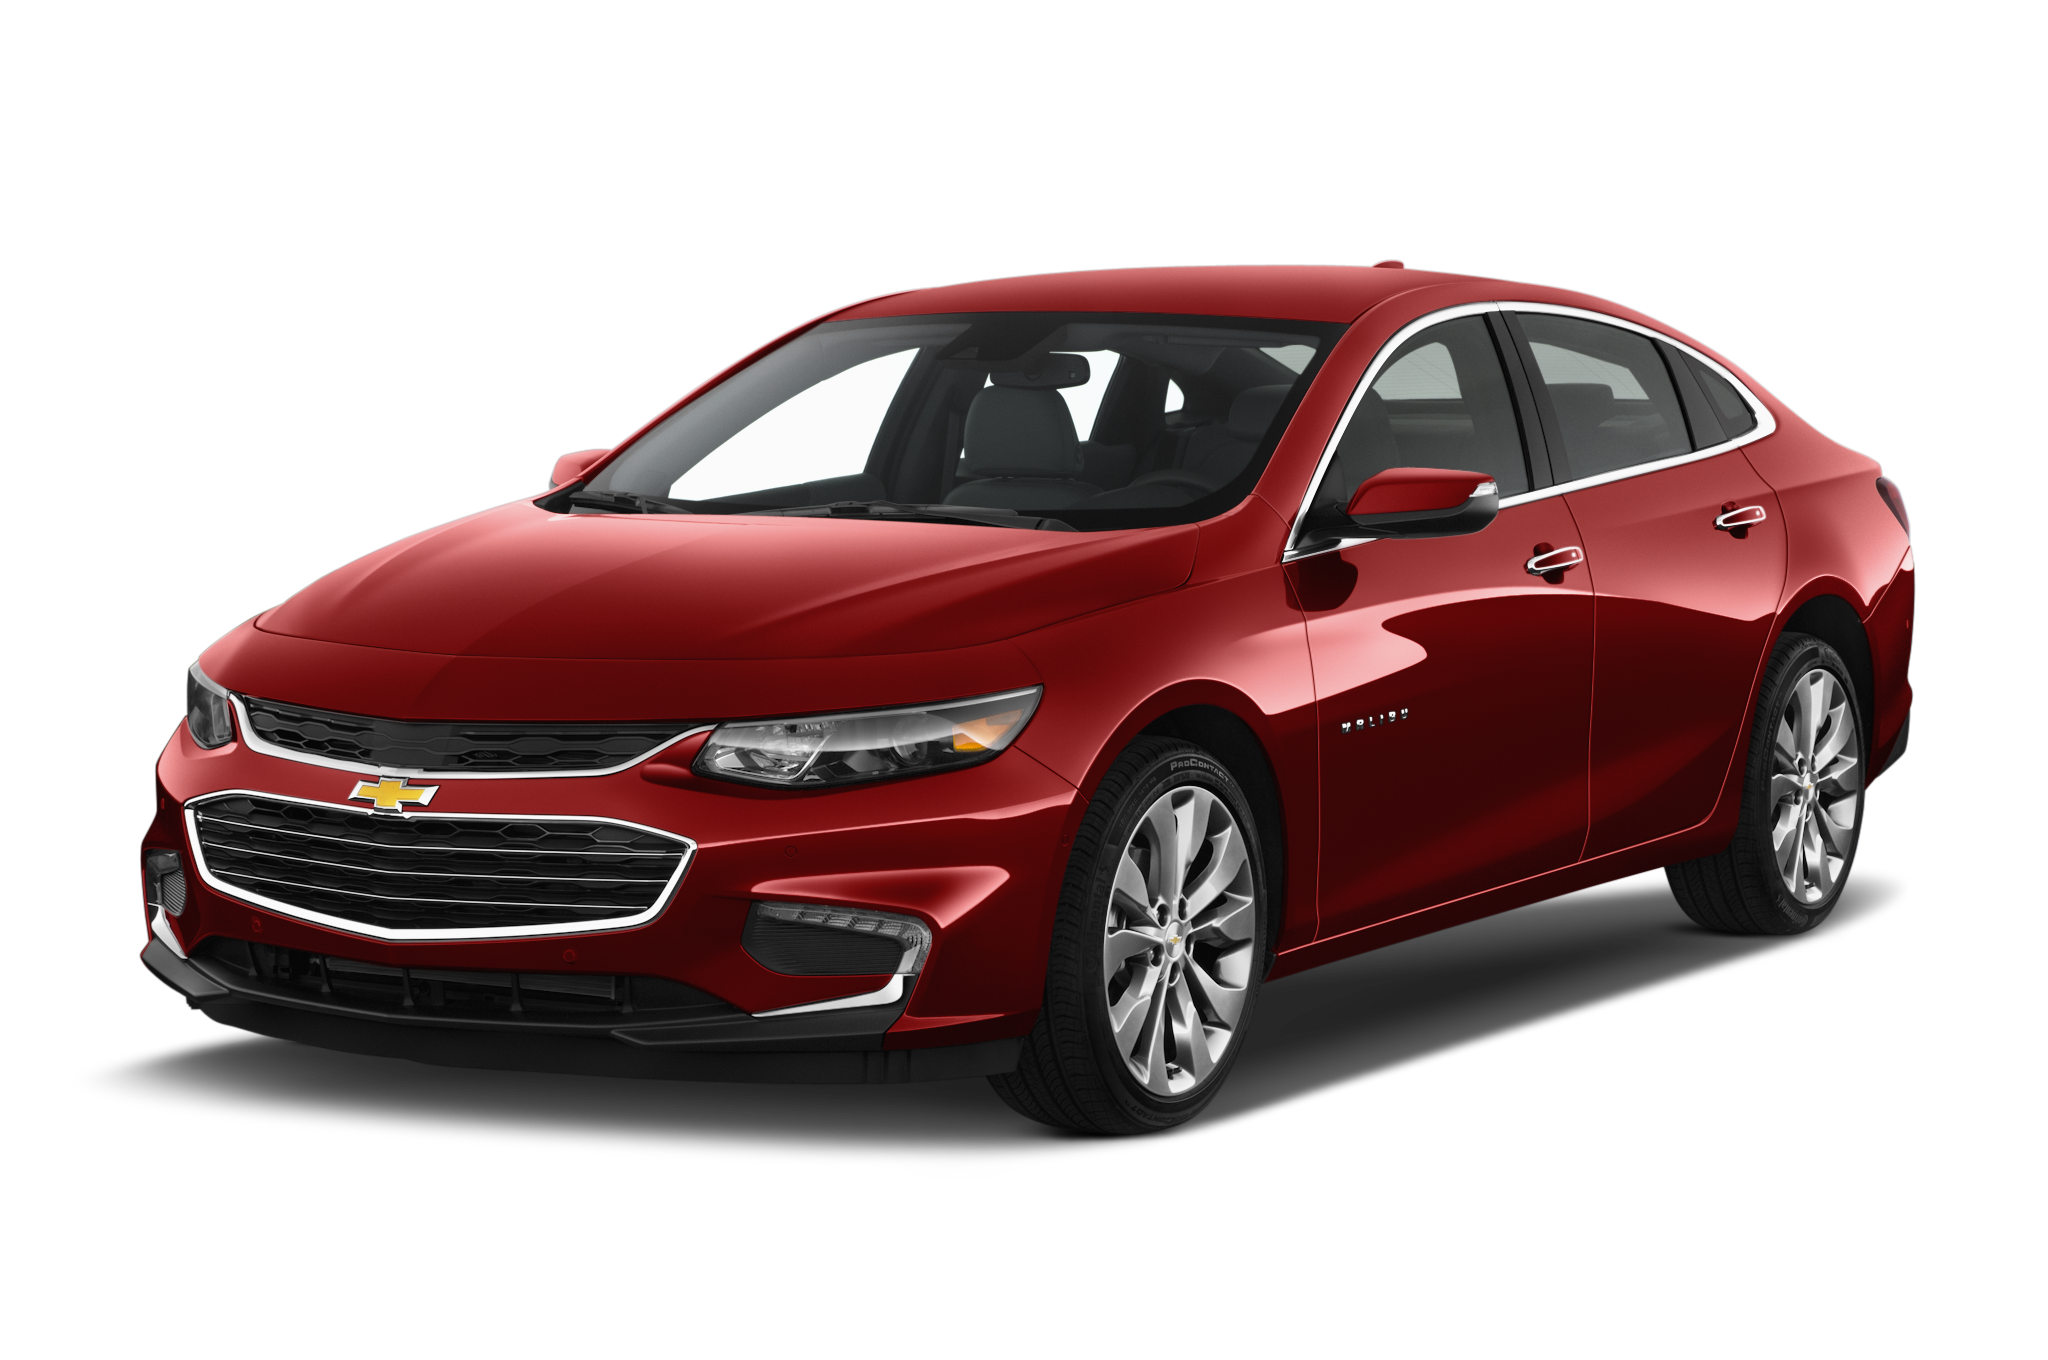 2016 Chevrolet Malibu Hybrid Returns 46 Mpg Automobile